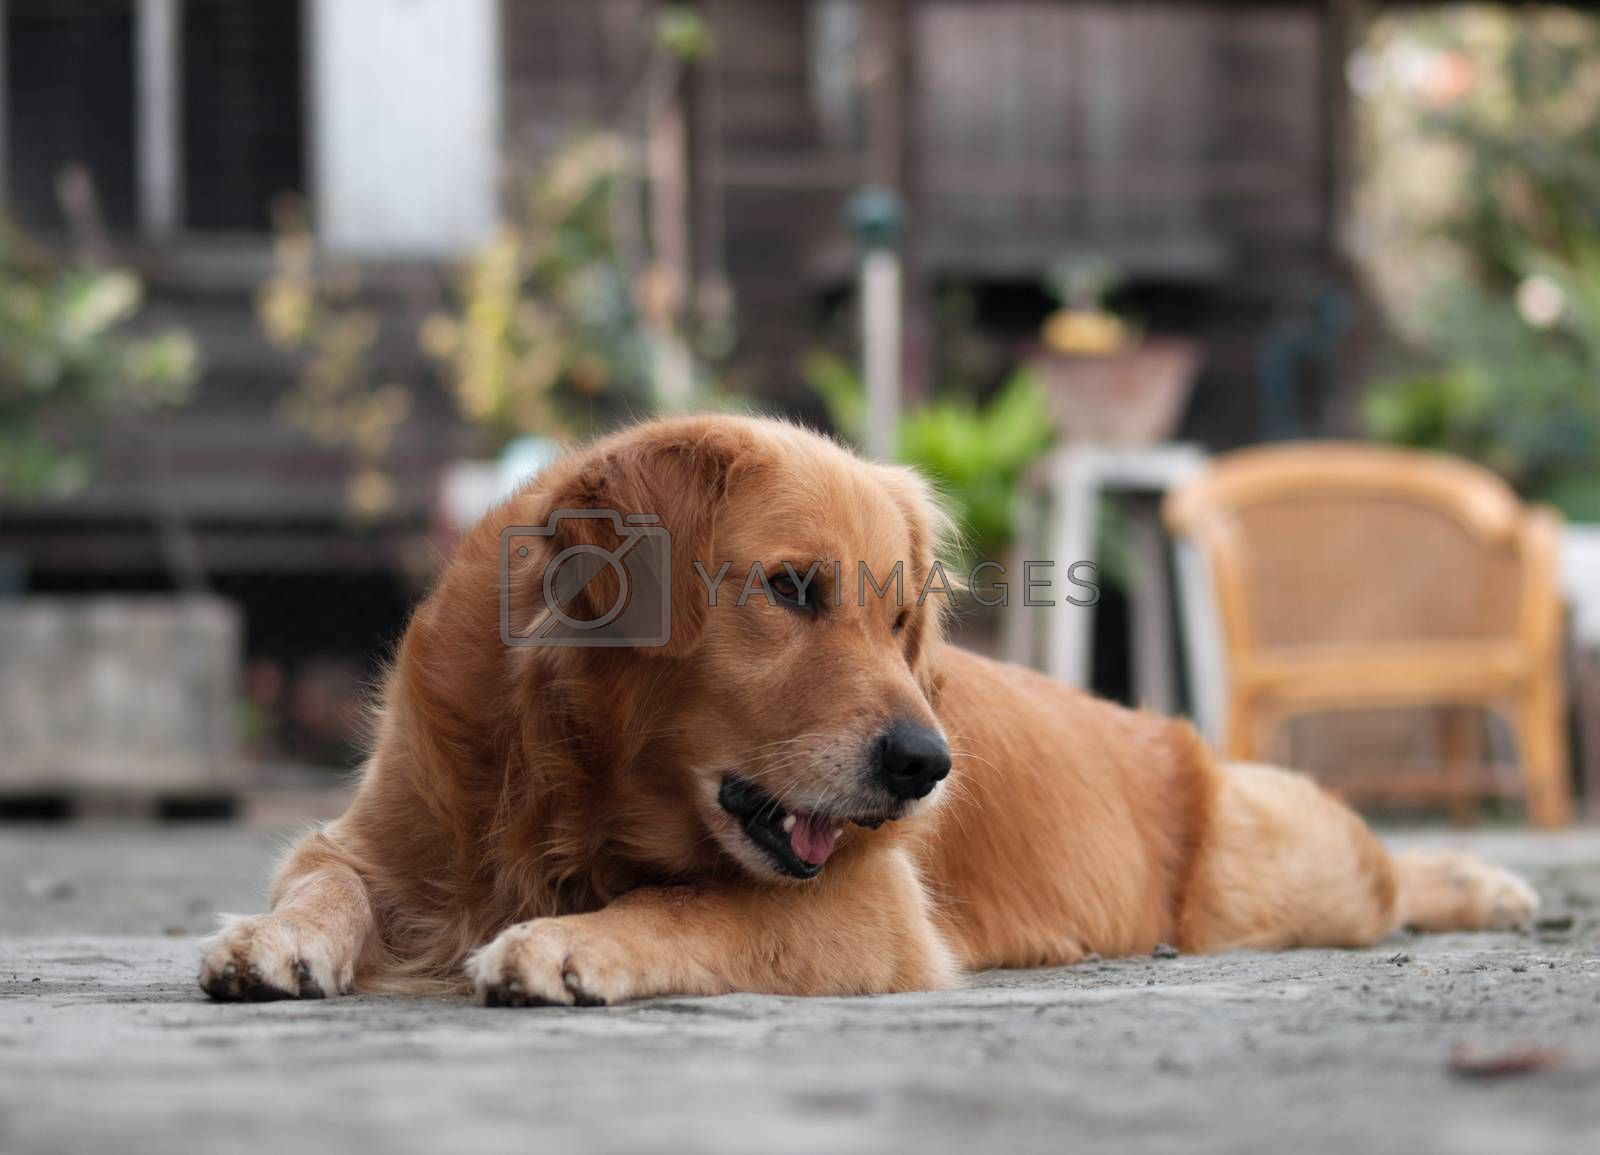 COLOR PHOTO OF GOLDEN RETRIEVER GAZING AT SOMETHING